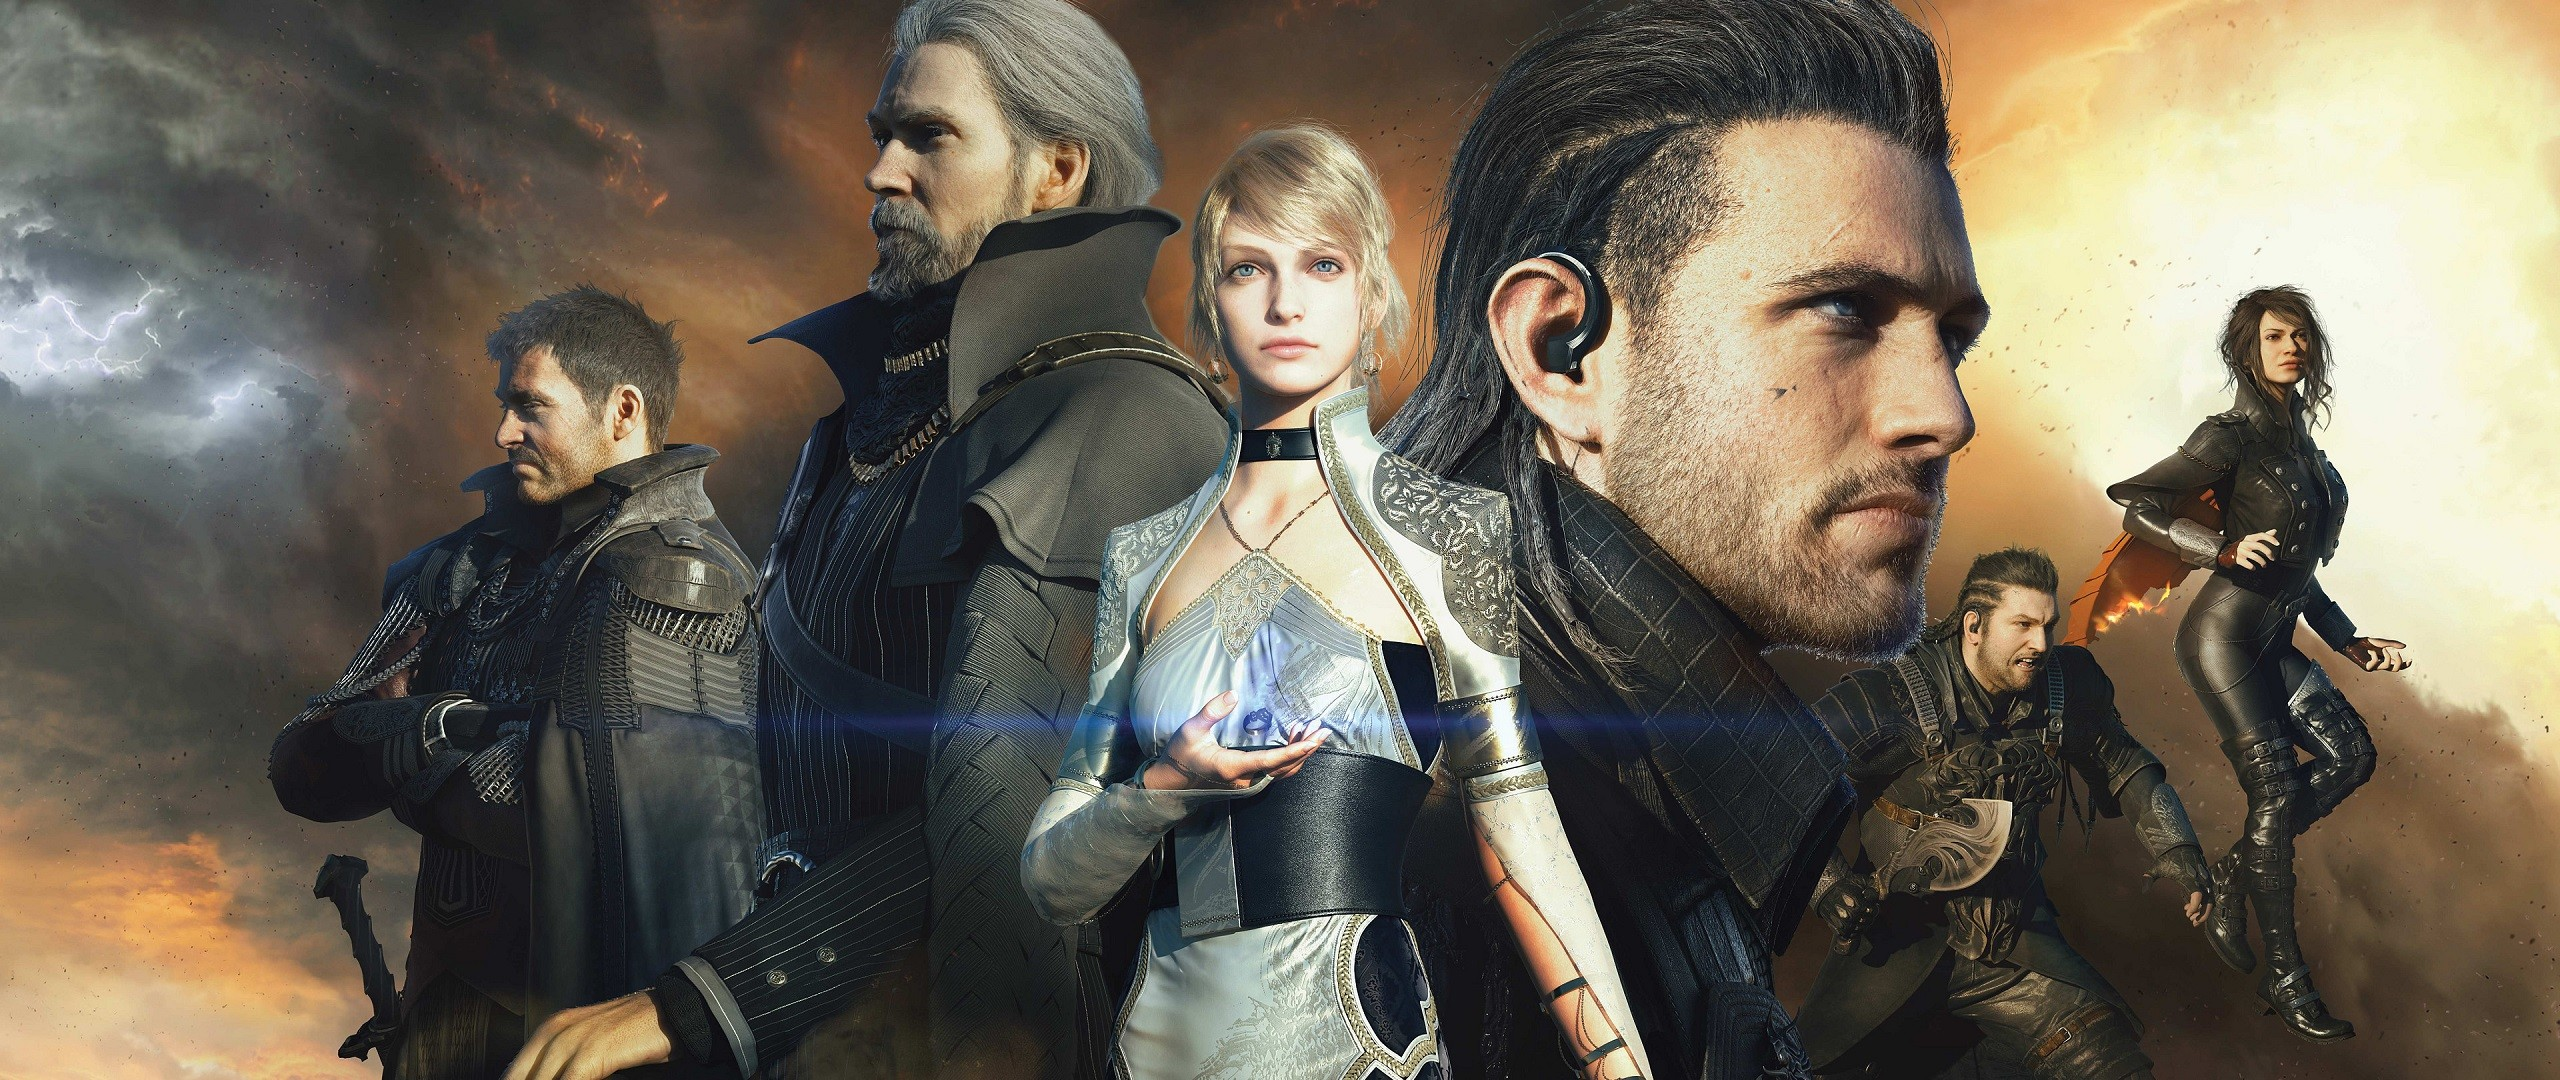 5 Kingsglaive: Final Fantasy XV HD Wallpapers   Backgrounds – Wallpaper  Abyss